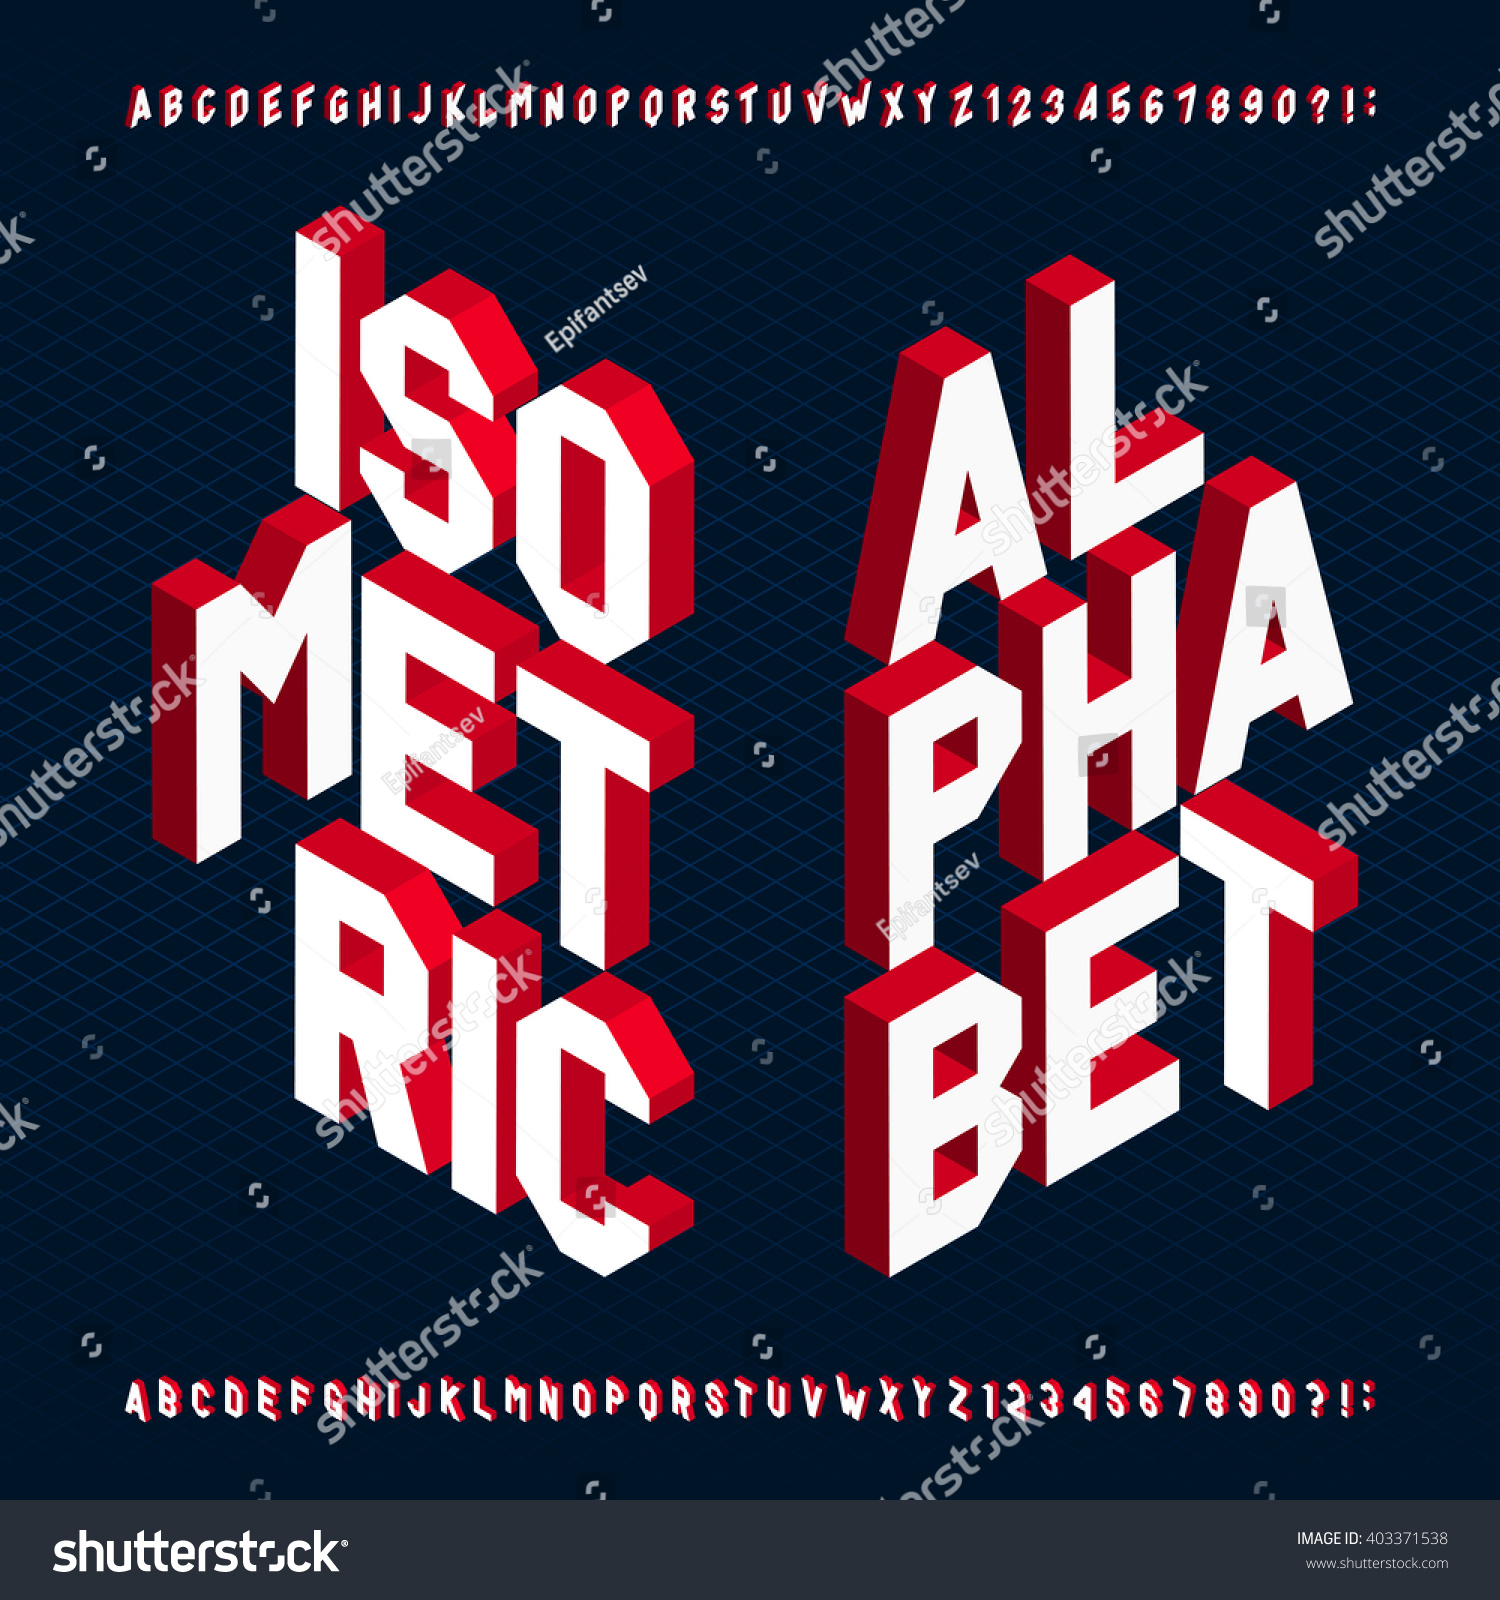 3d isometric alphabet font letters numbers stock vector 403371538 shutterstock